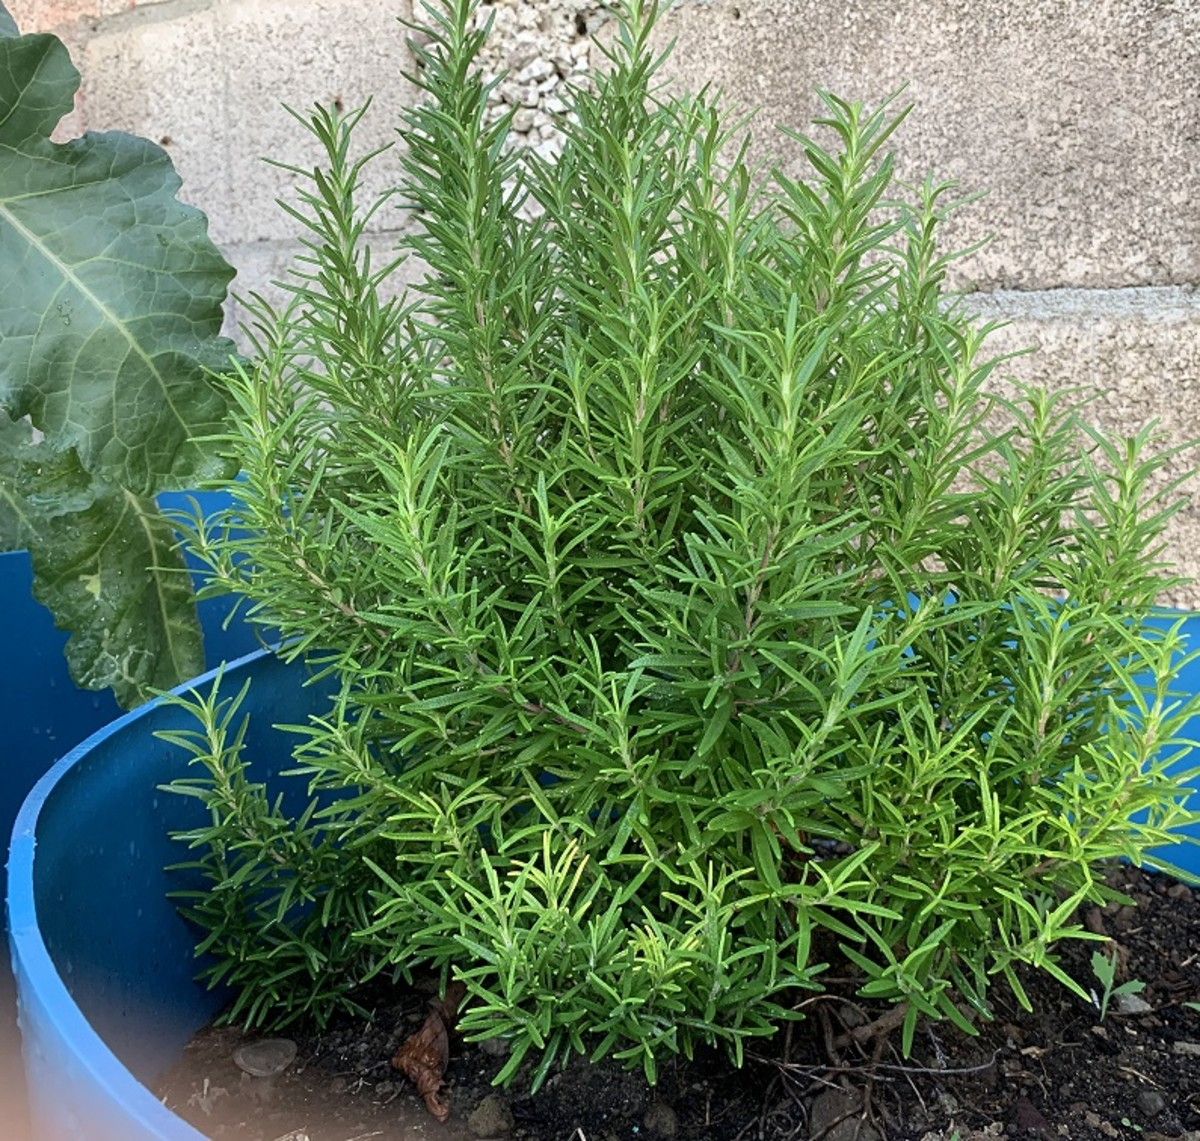 Rosemary: my favorite fragrance in plants